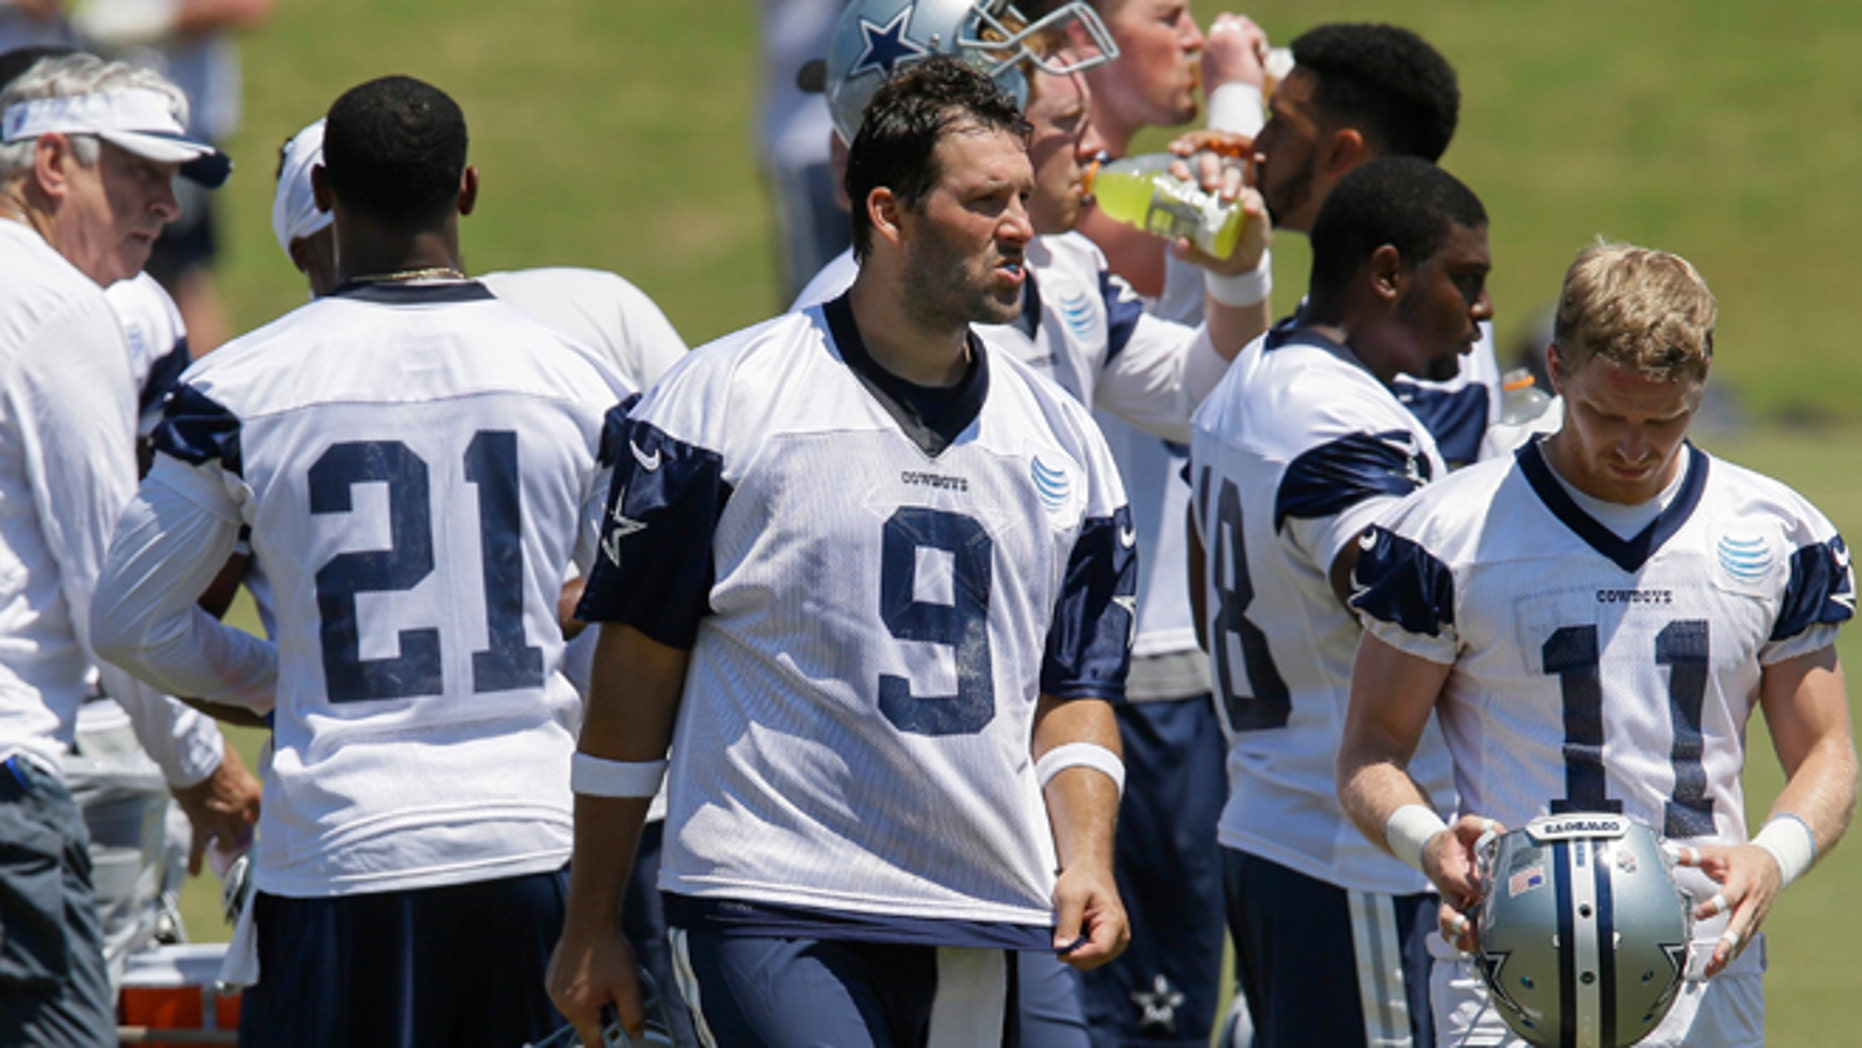 Dallas Cowboys quarterback Tony Romo (9) takes a break during an NFL football organized activity, Wednesday, June 10, 2015, in Irving, Texas. (AP Photo/Tim Sharp)